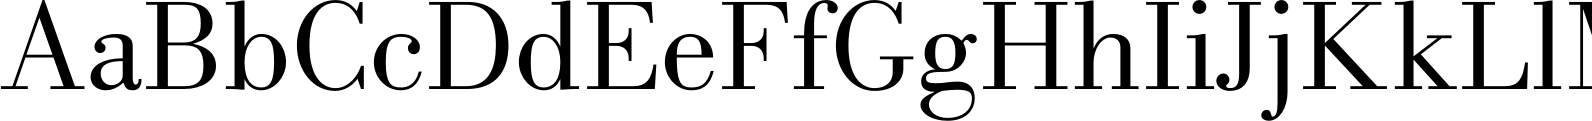 New Bodoni DT Book Font